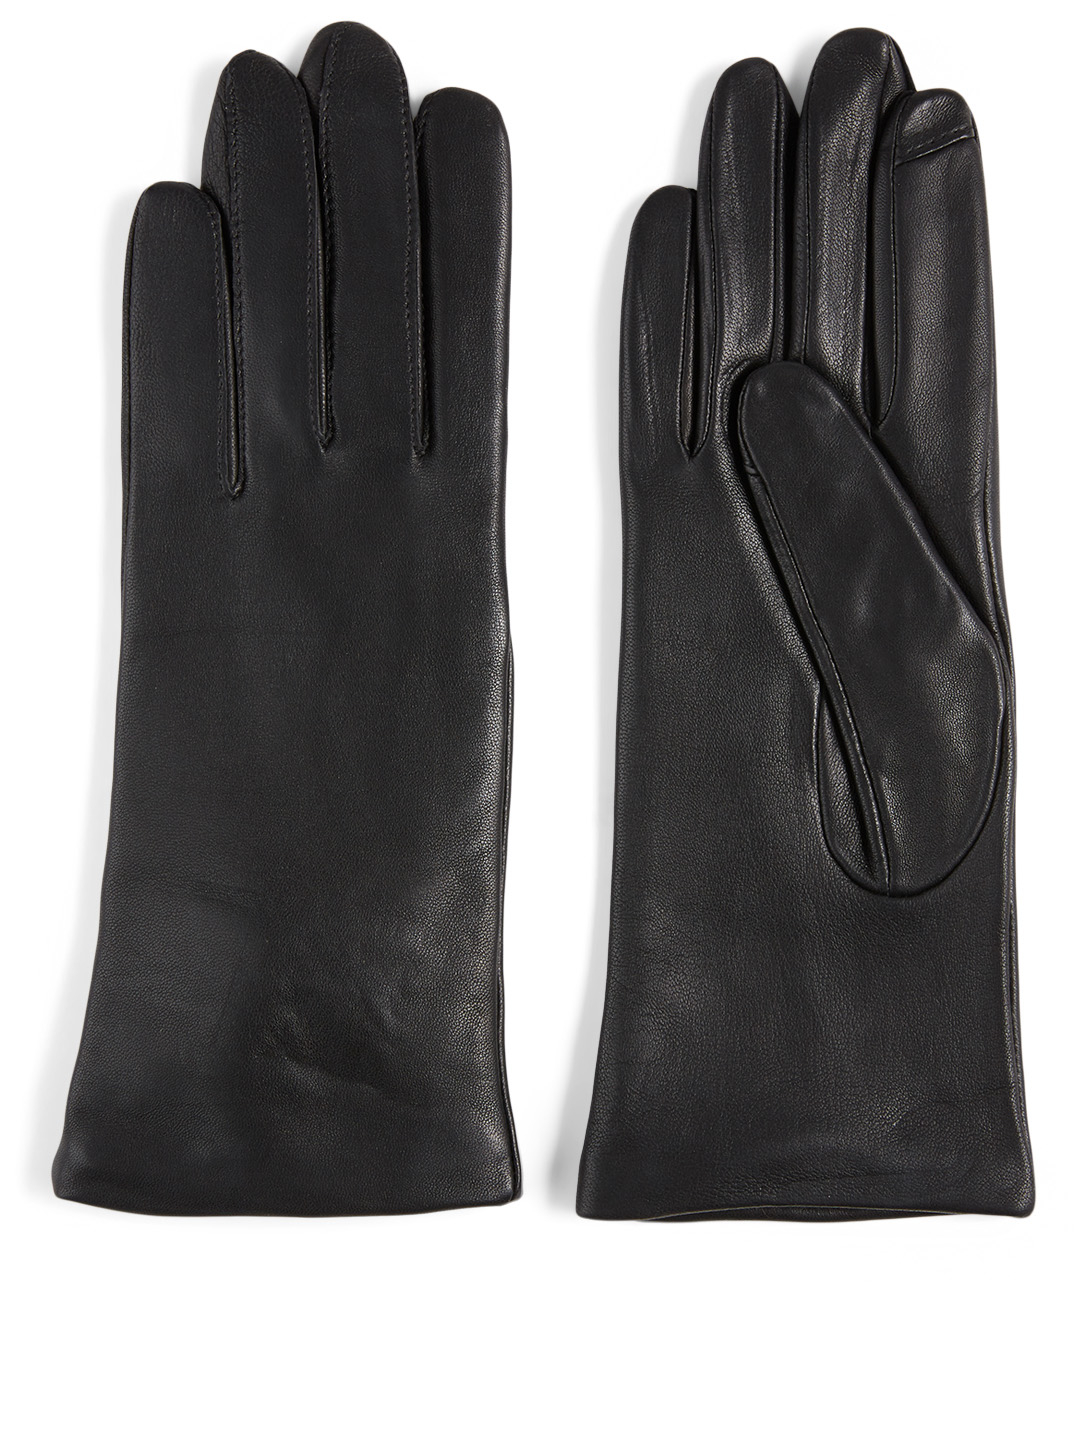 FOWNES BROTHERS & CO. Leather Tech Gloves Collections Black